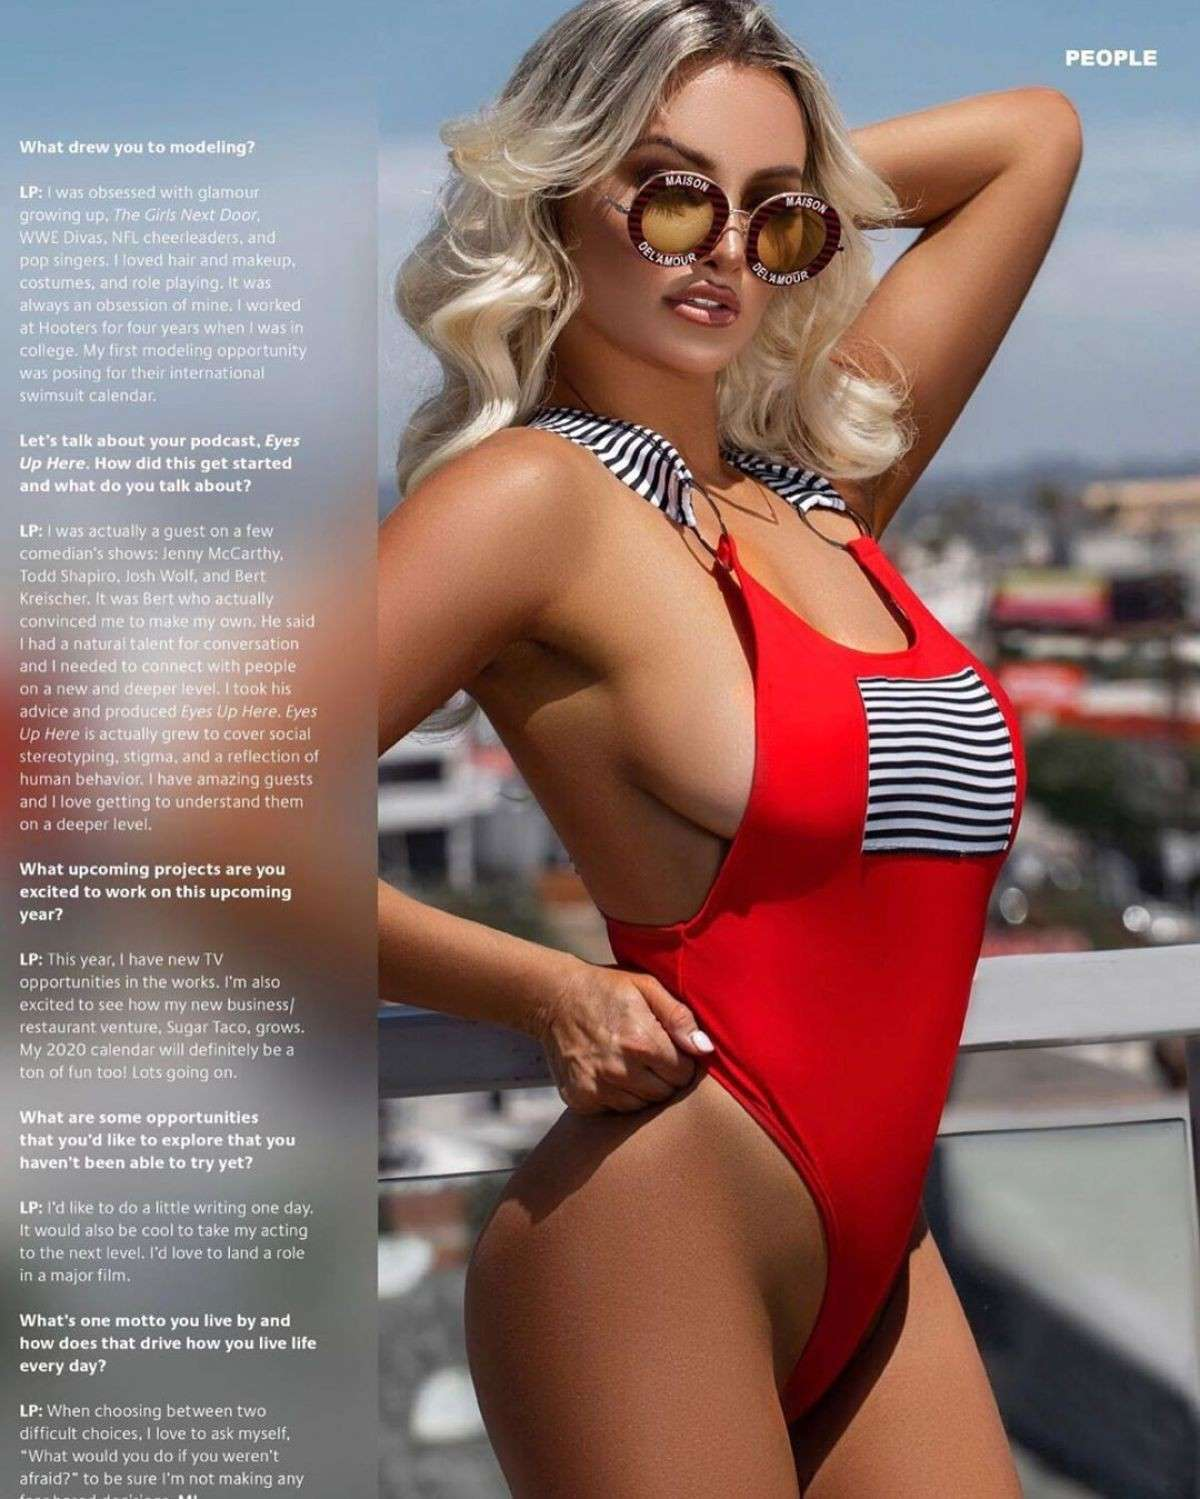 Lindsey Pelas Huge Assets in Miami Living Magazine - January 2020